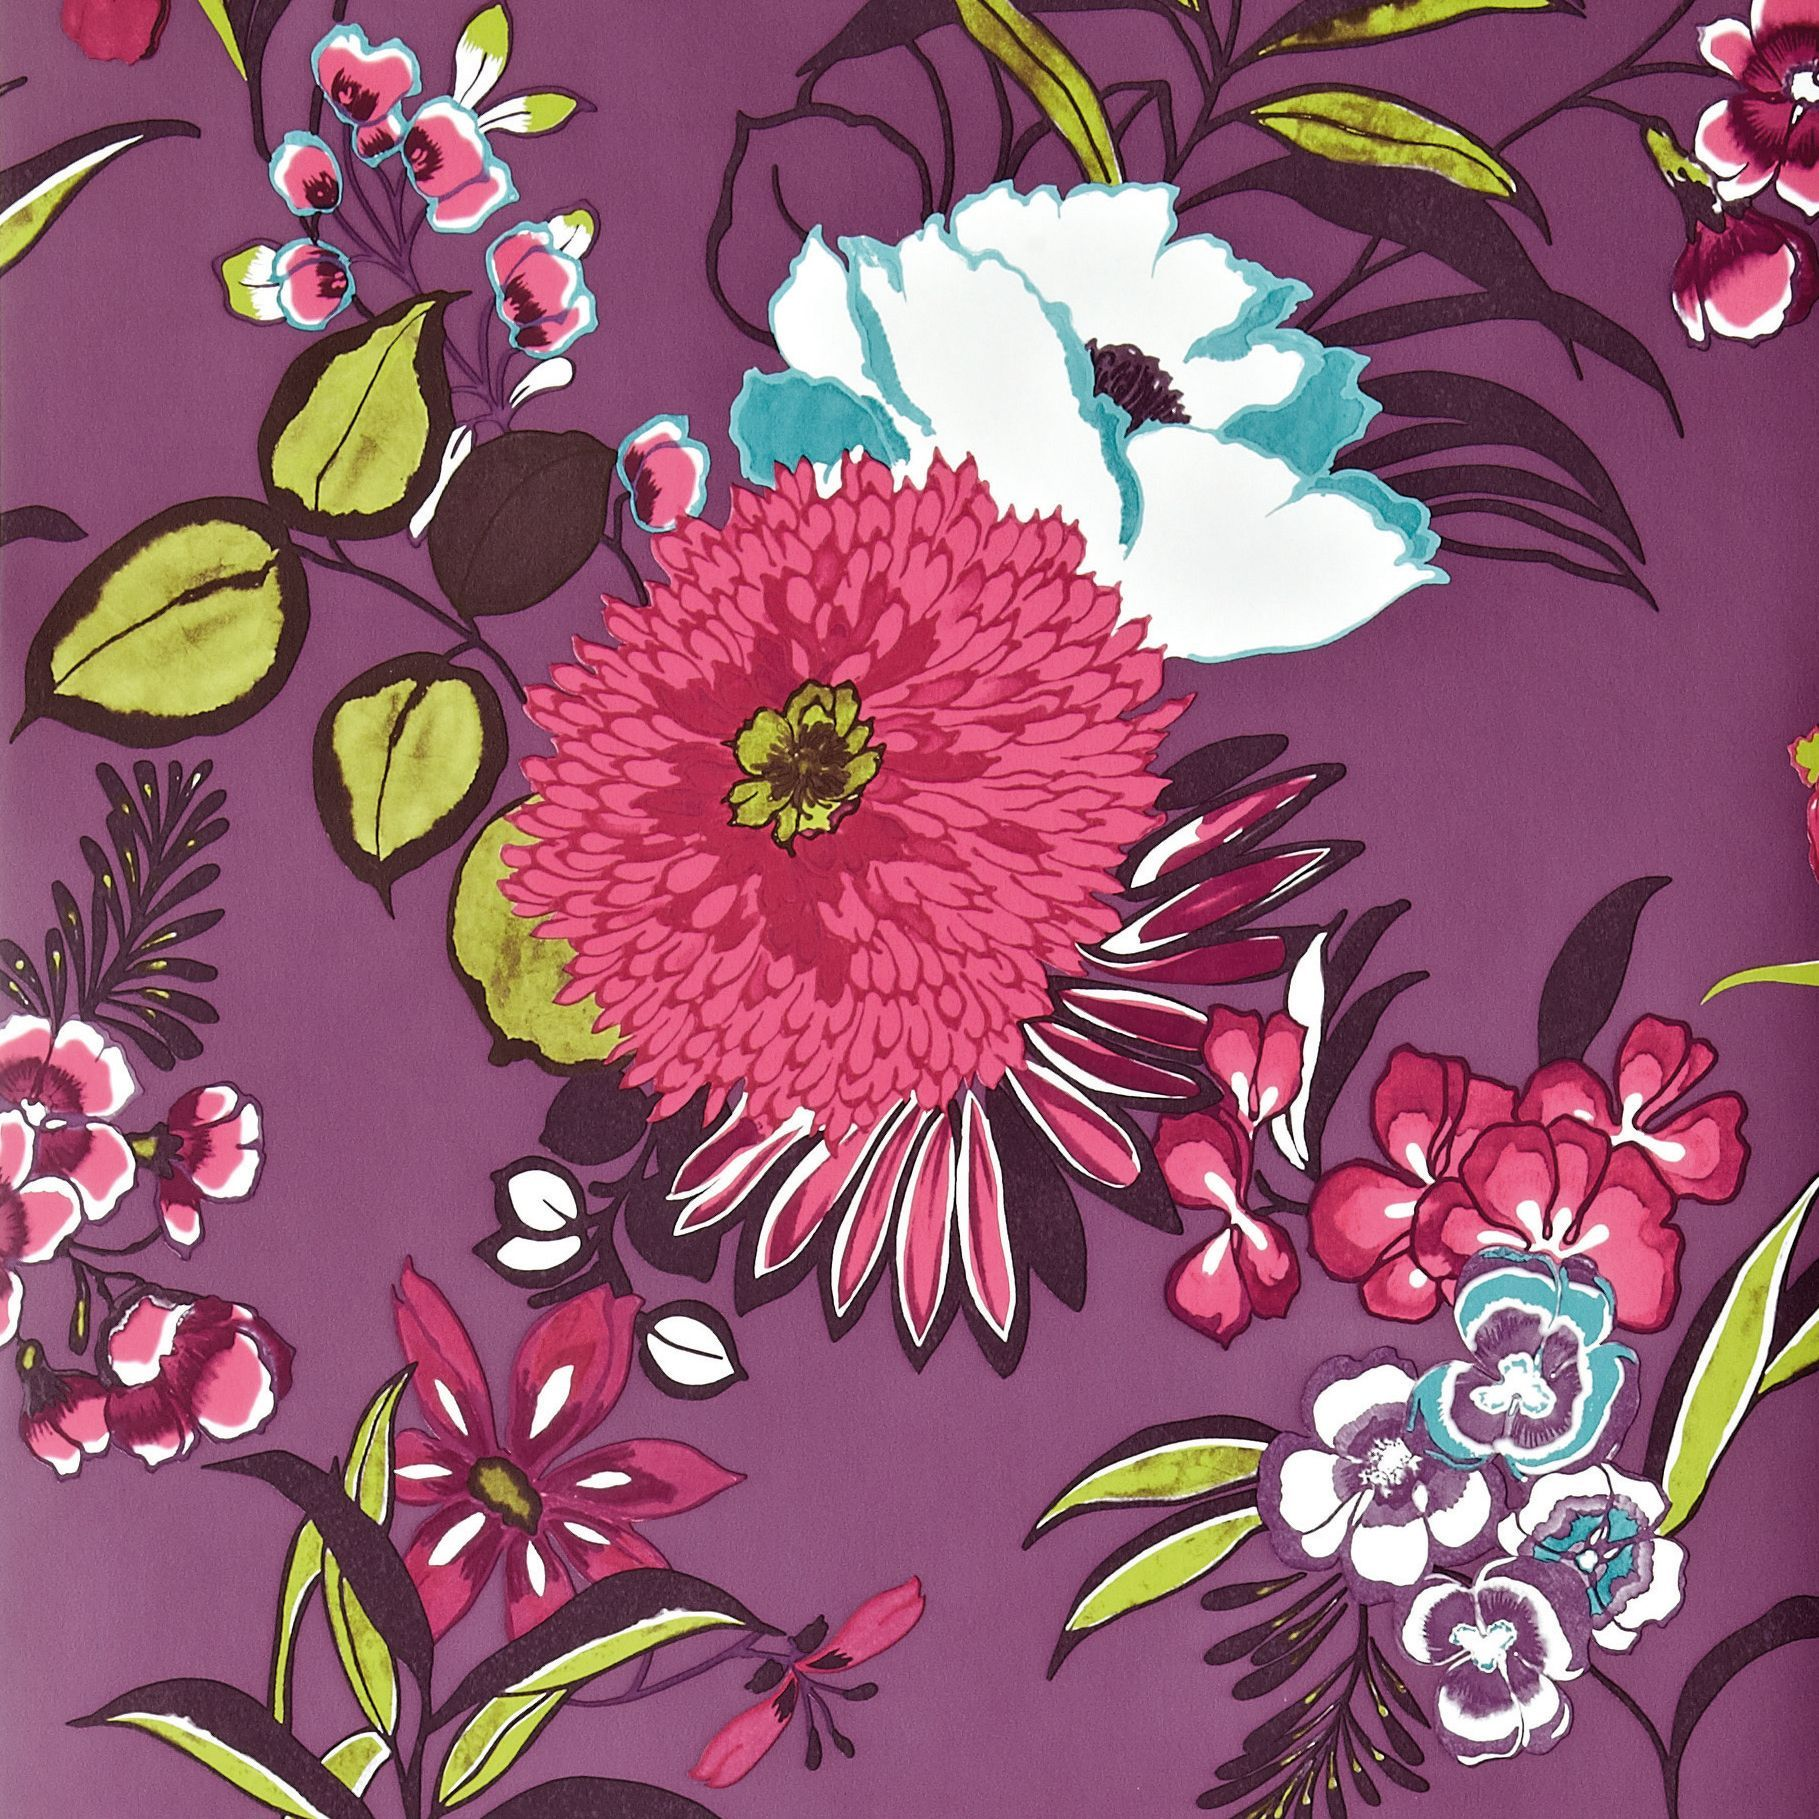 Home diy wallpaper illustration arthouse imagine fern plum motif vinyl - Cocktail Plum Floral Wallpaper B Q For All Your Home And Garden Supplies And Advice On All The Latest Diy Trends